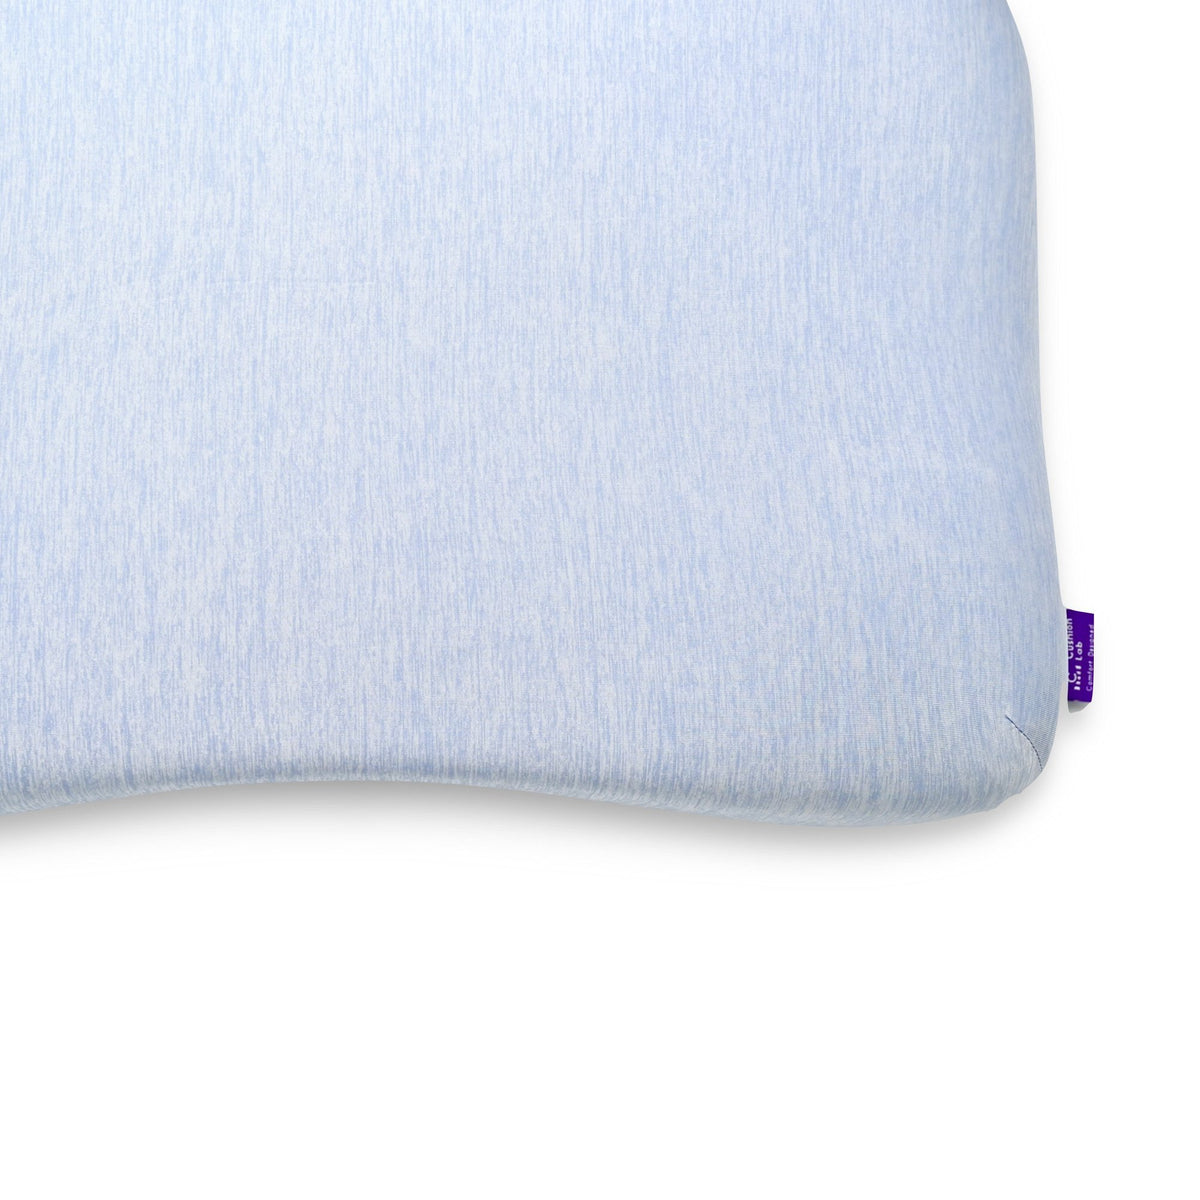 Cooling Ergonomic Contour Pillow Curved Shoulder Edge - Cushion Lab